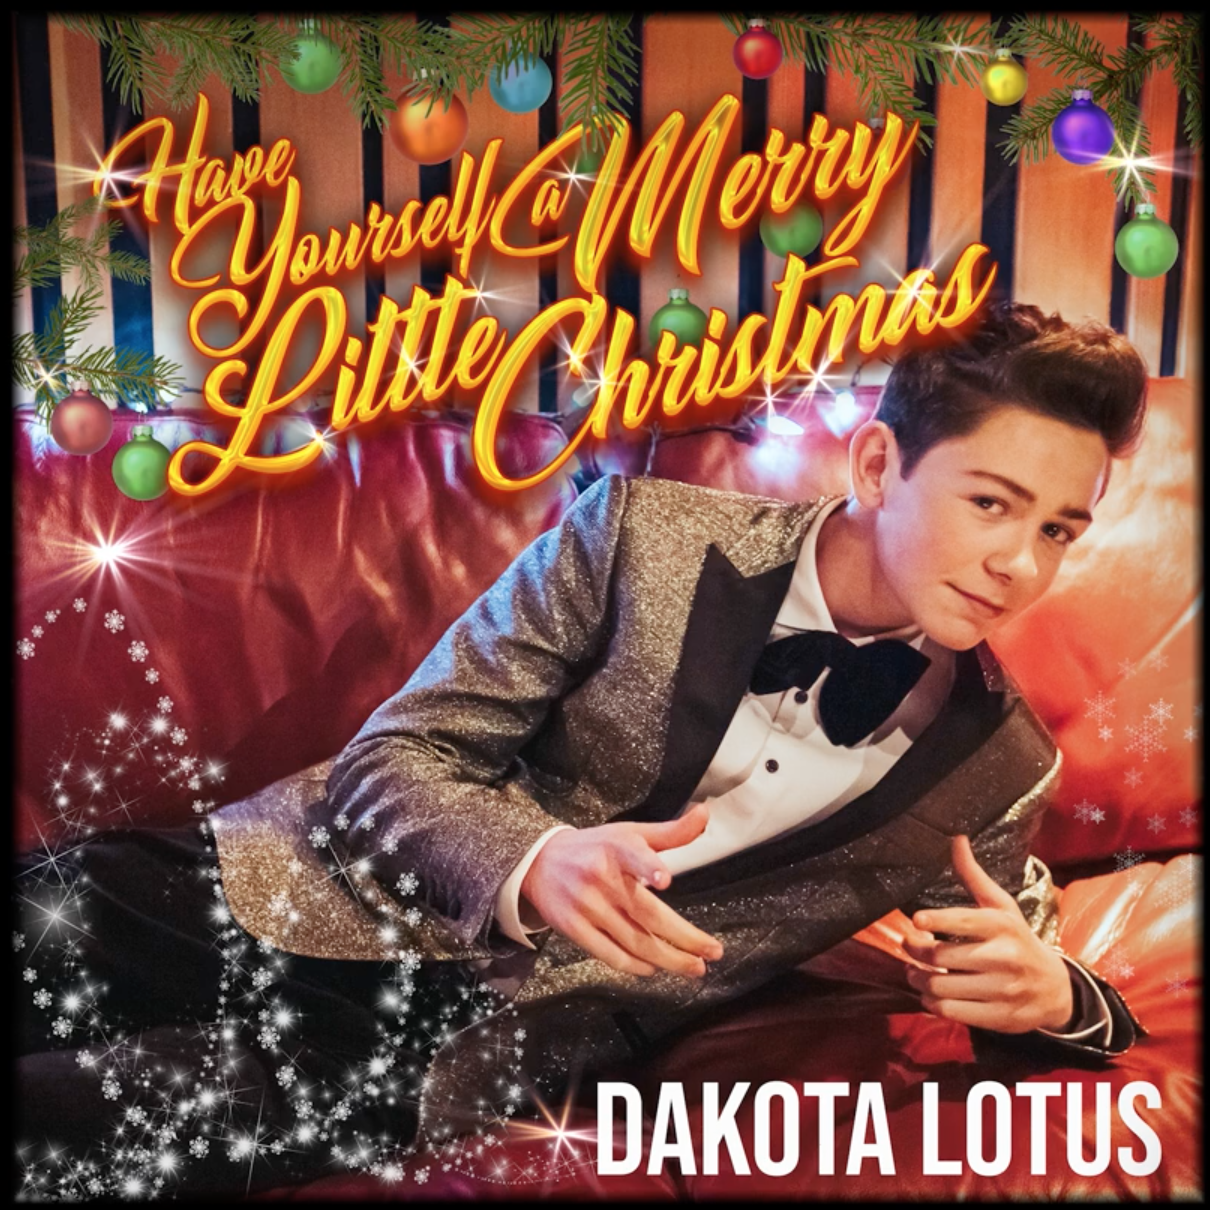 Dakota Lotus Xmas